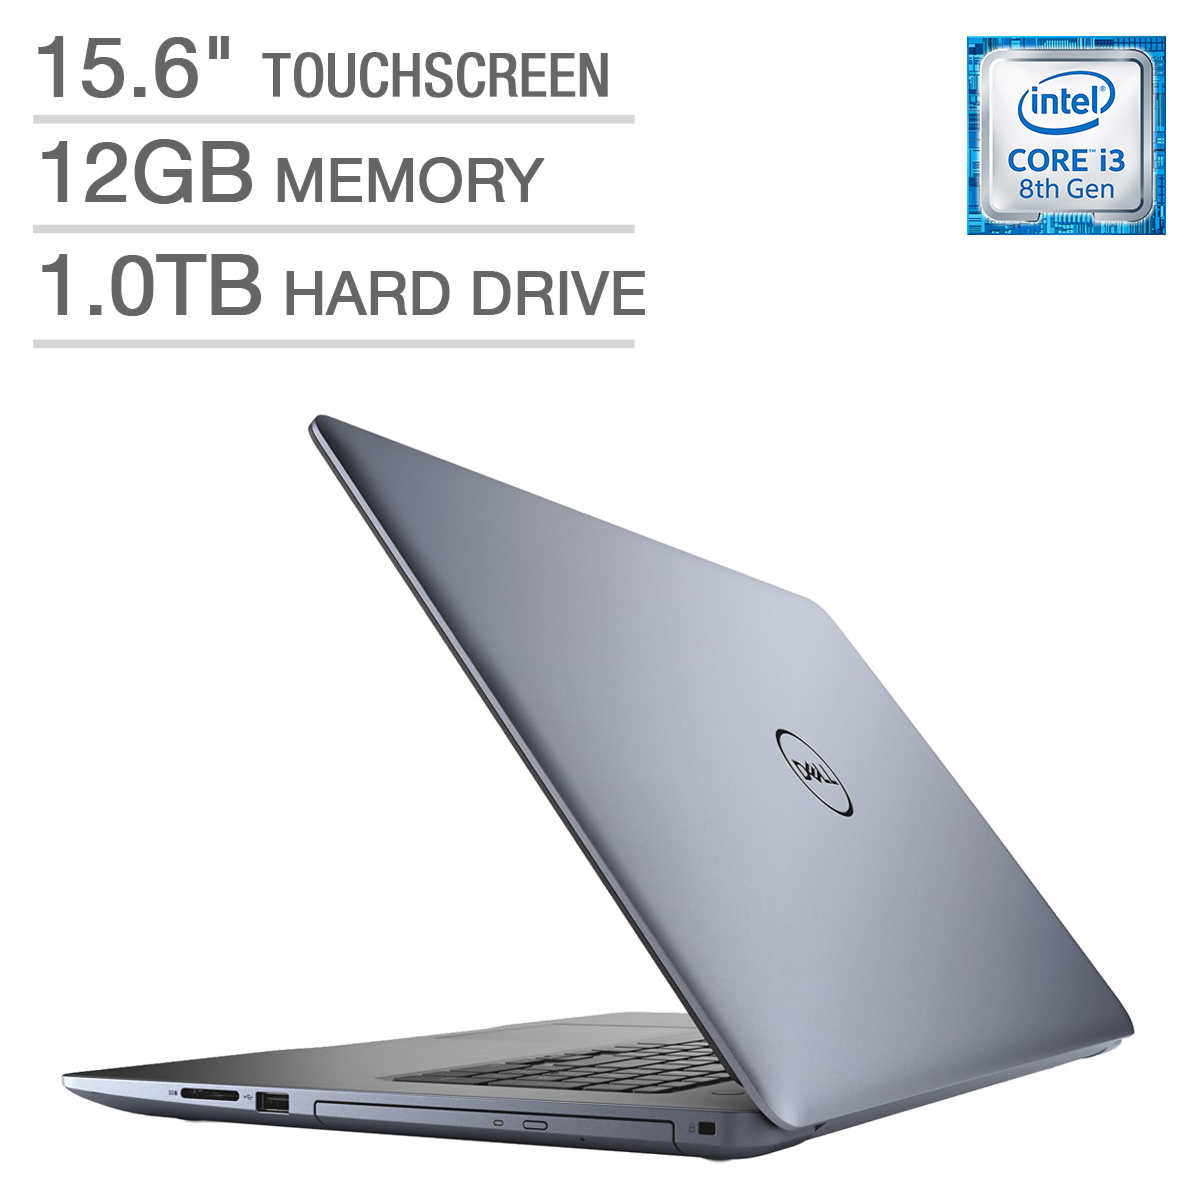 Dell Inspiron 15 5000 Series Touchscreen Laptop - Intel Core i3 - 1080p -  Blue